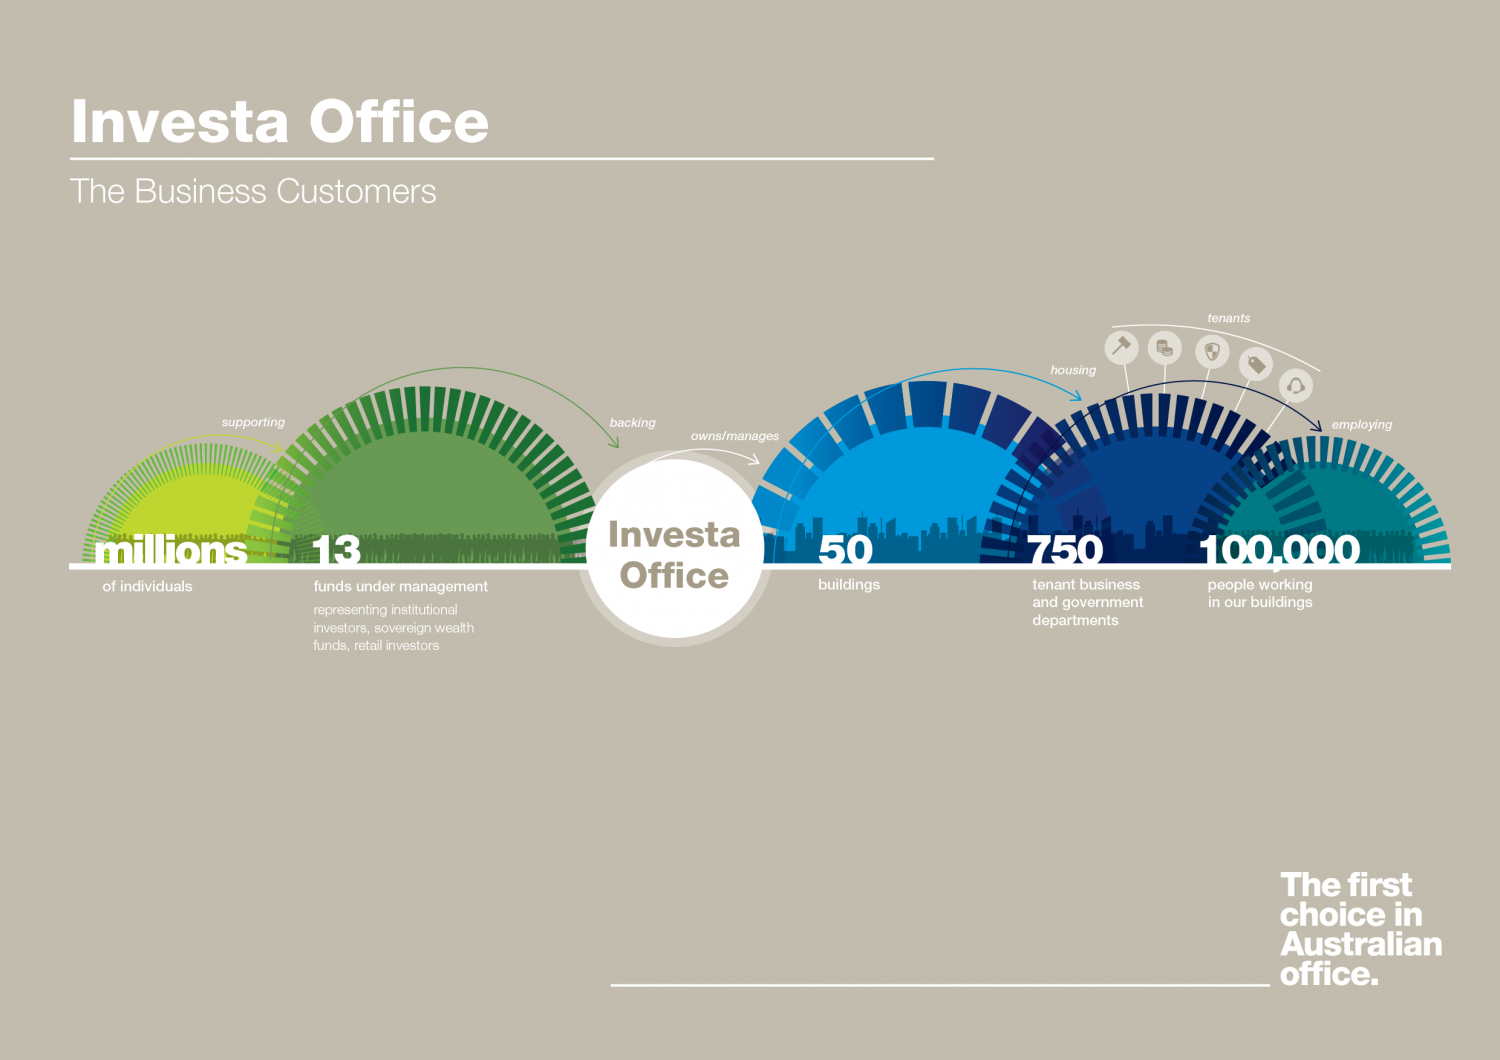 Investa Business Profile Infographic